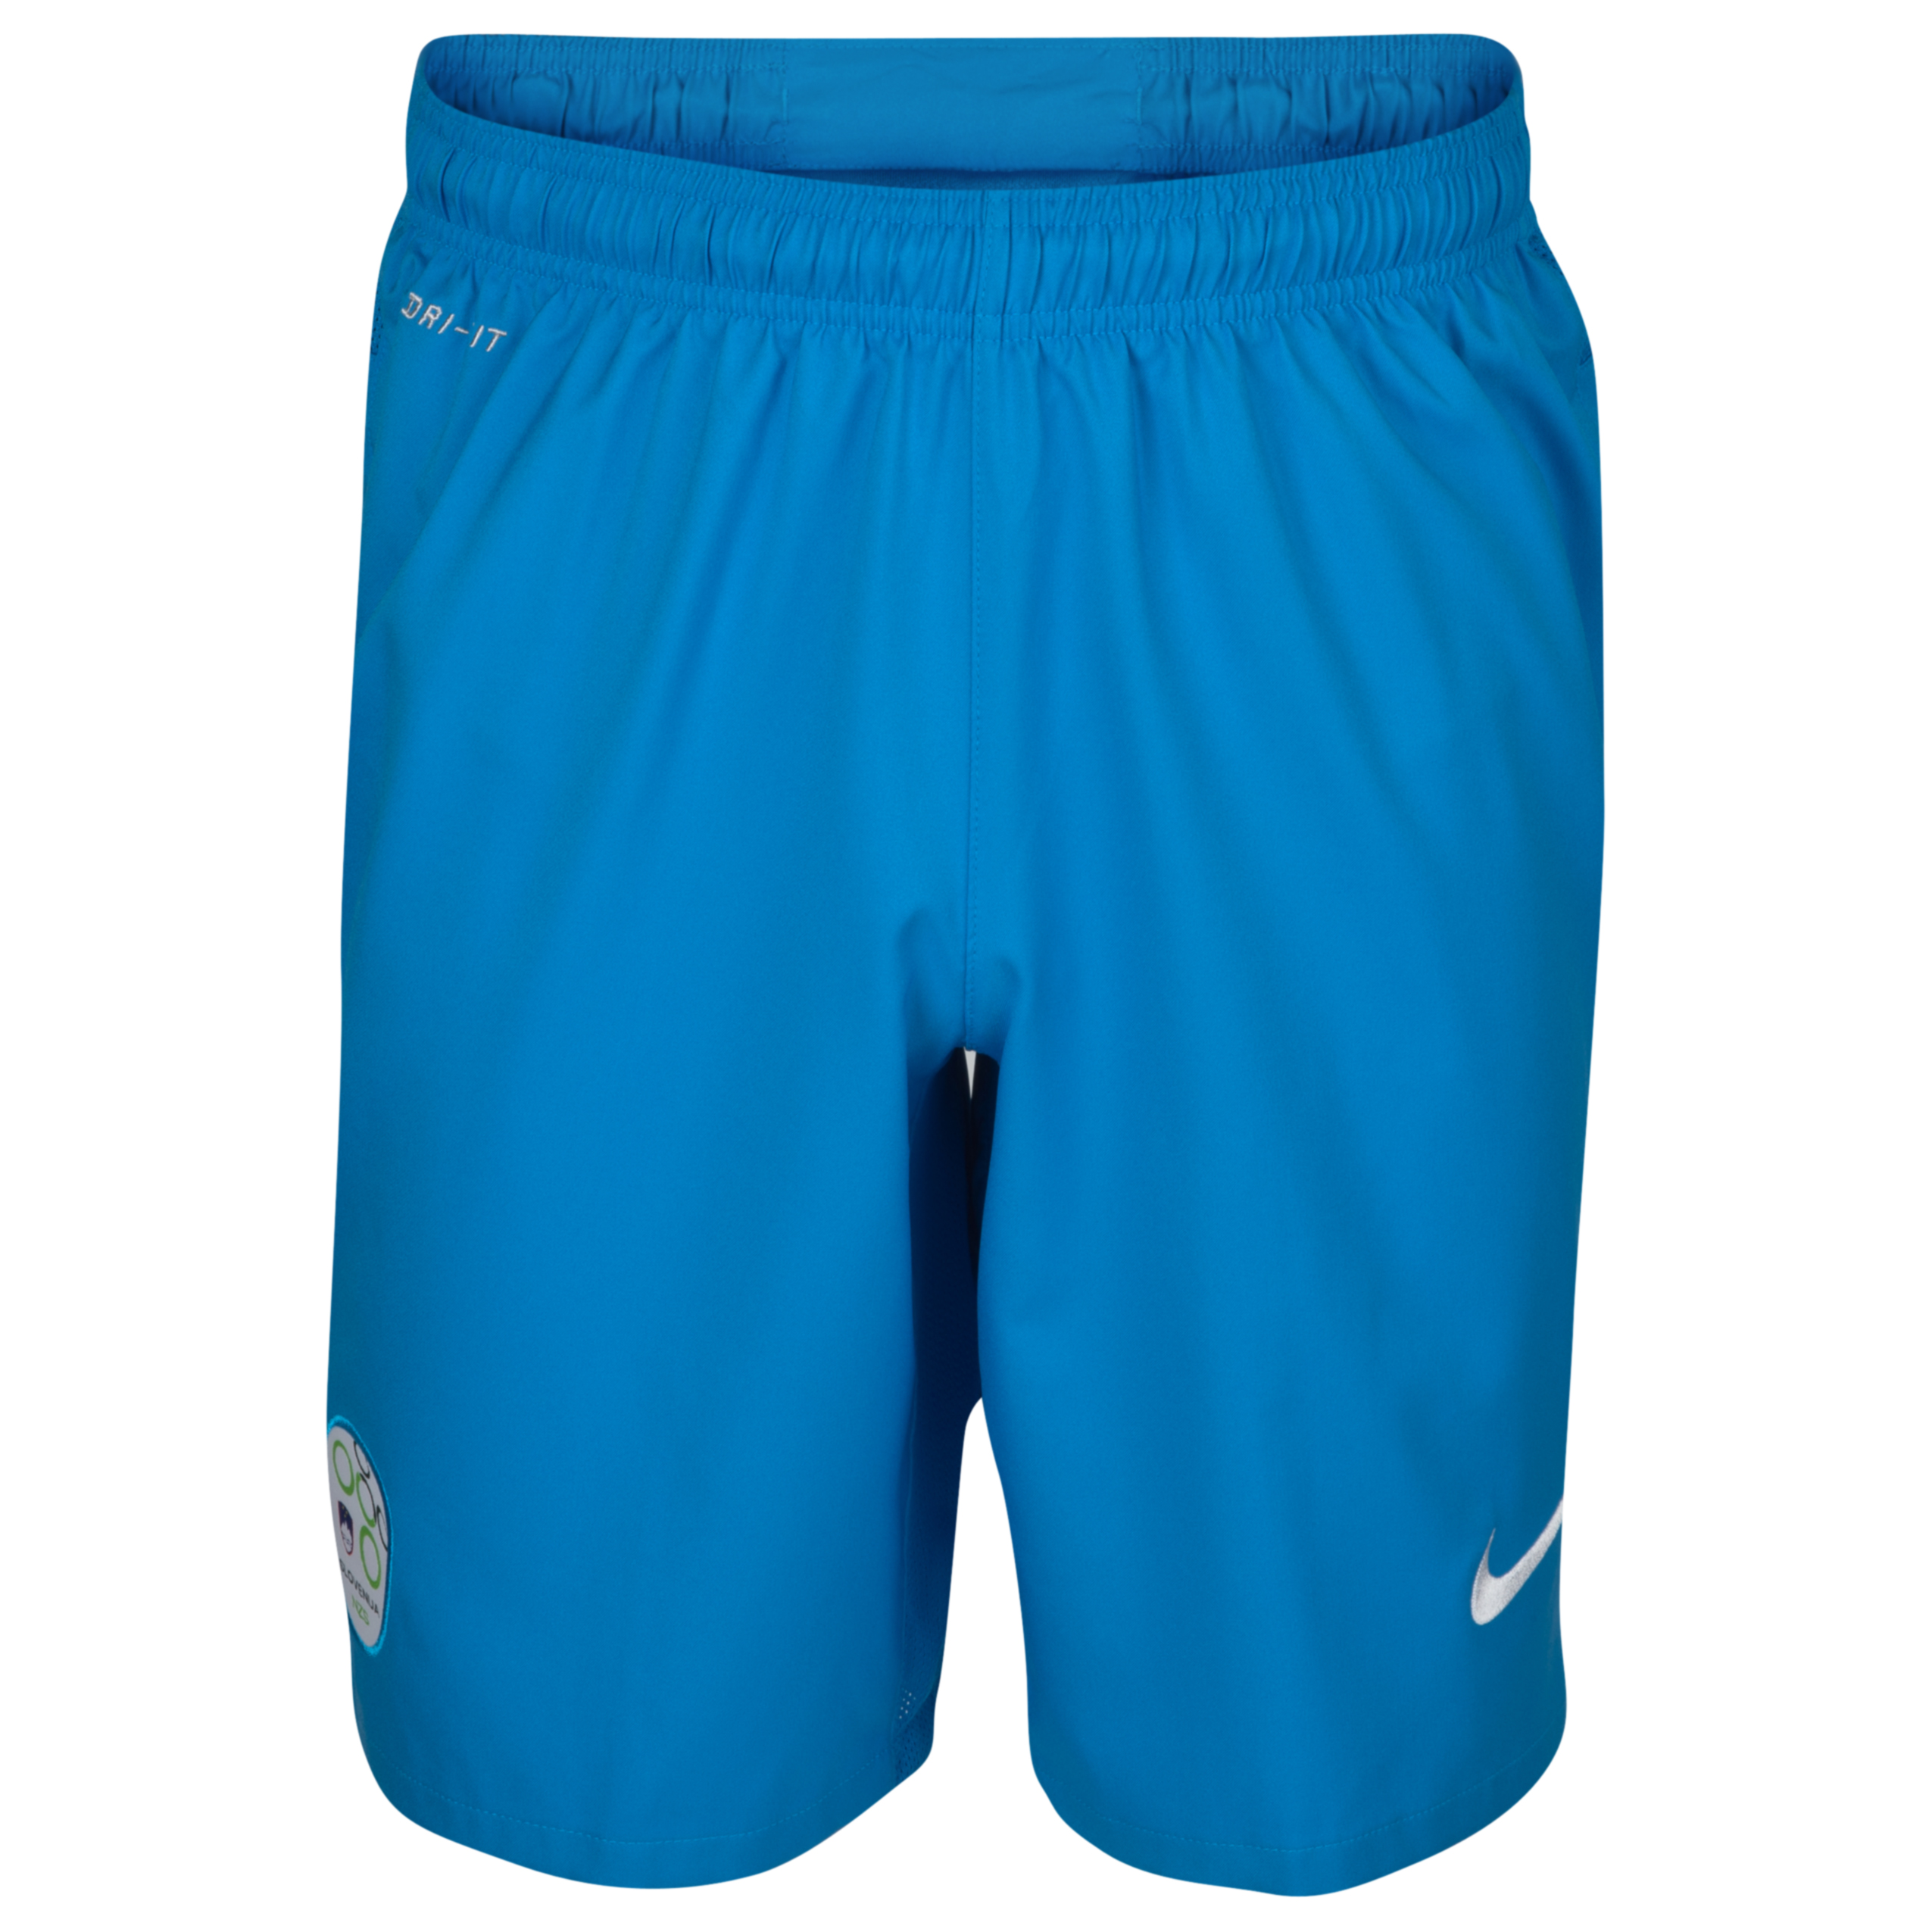 Slovenia Home Shorts 2012/13